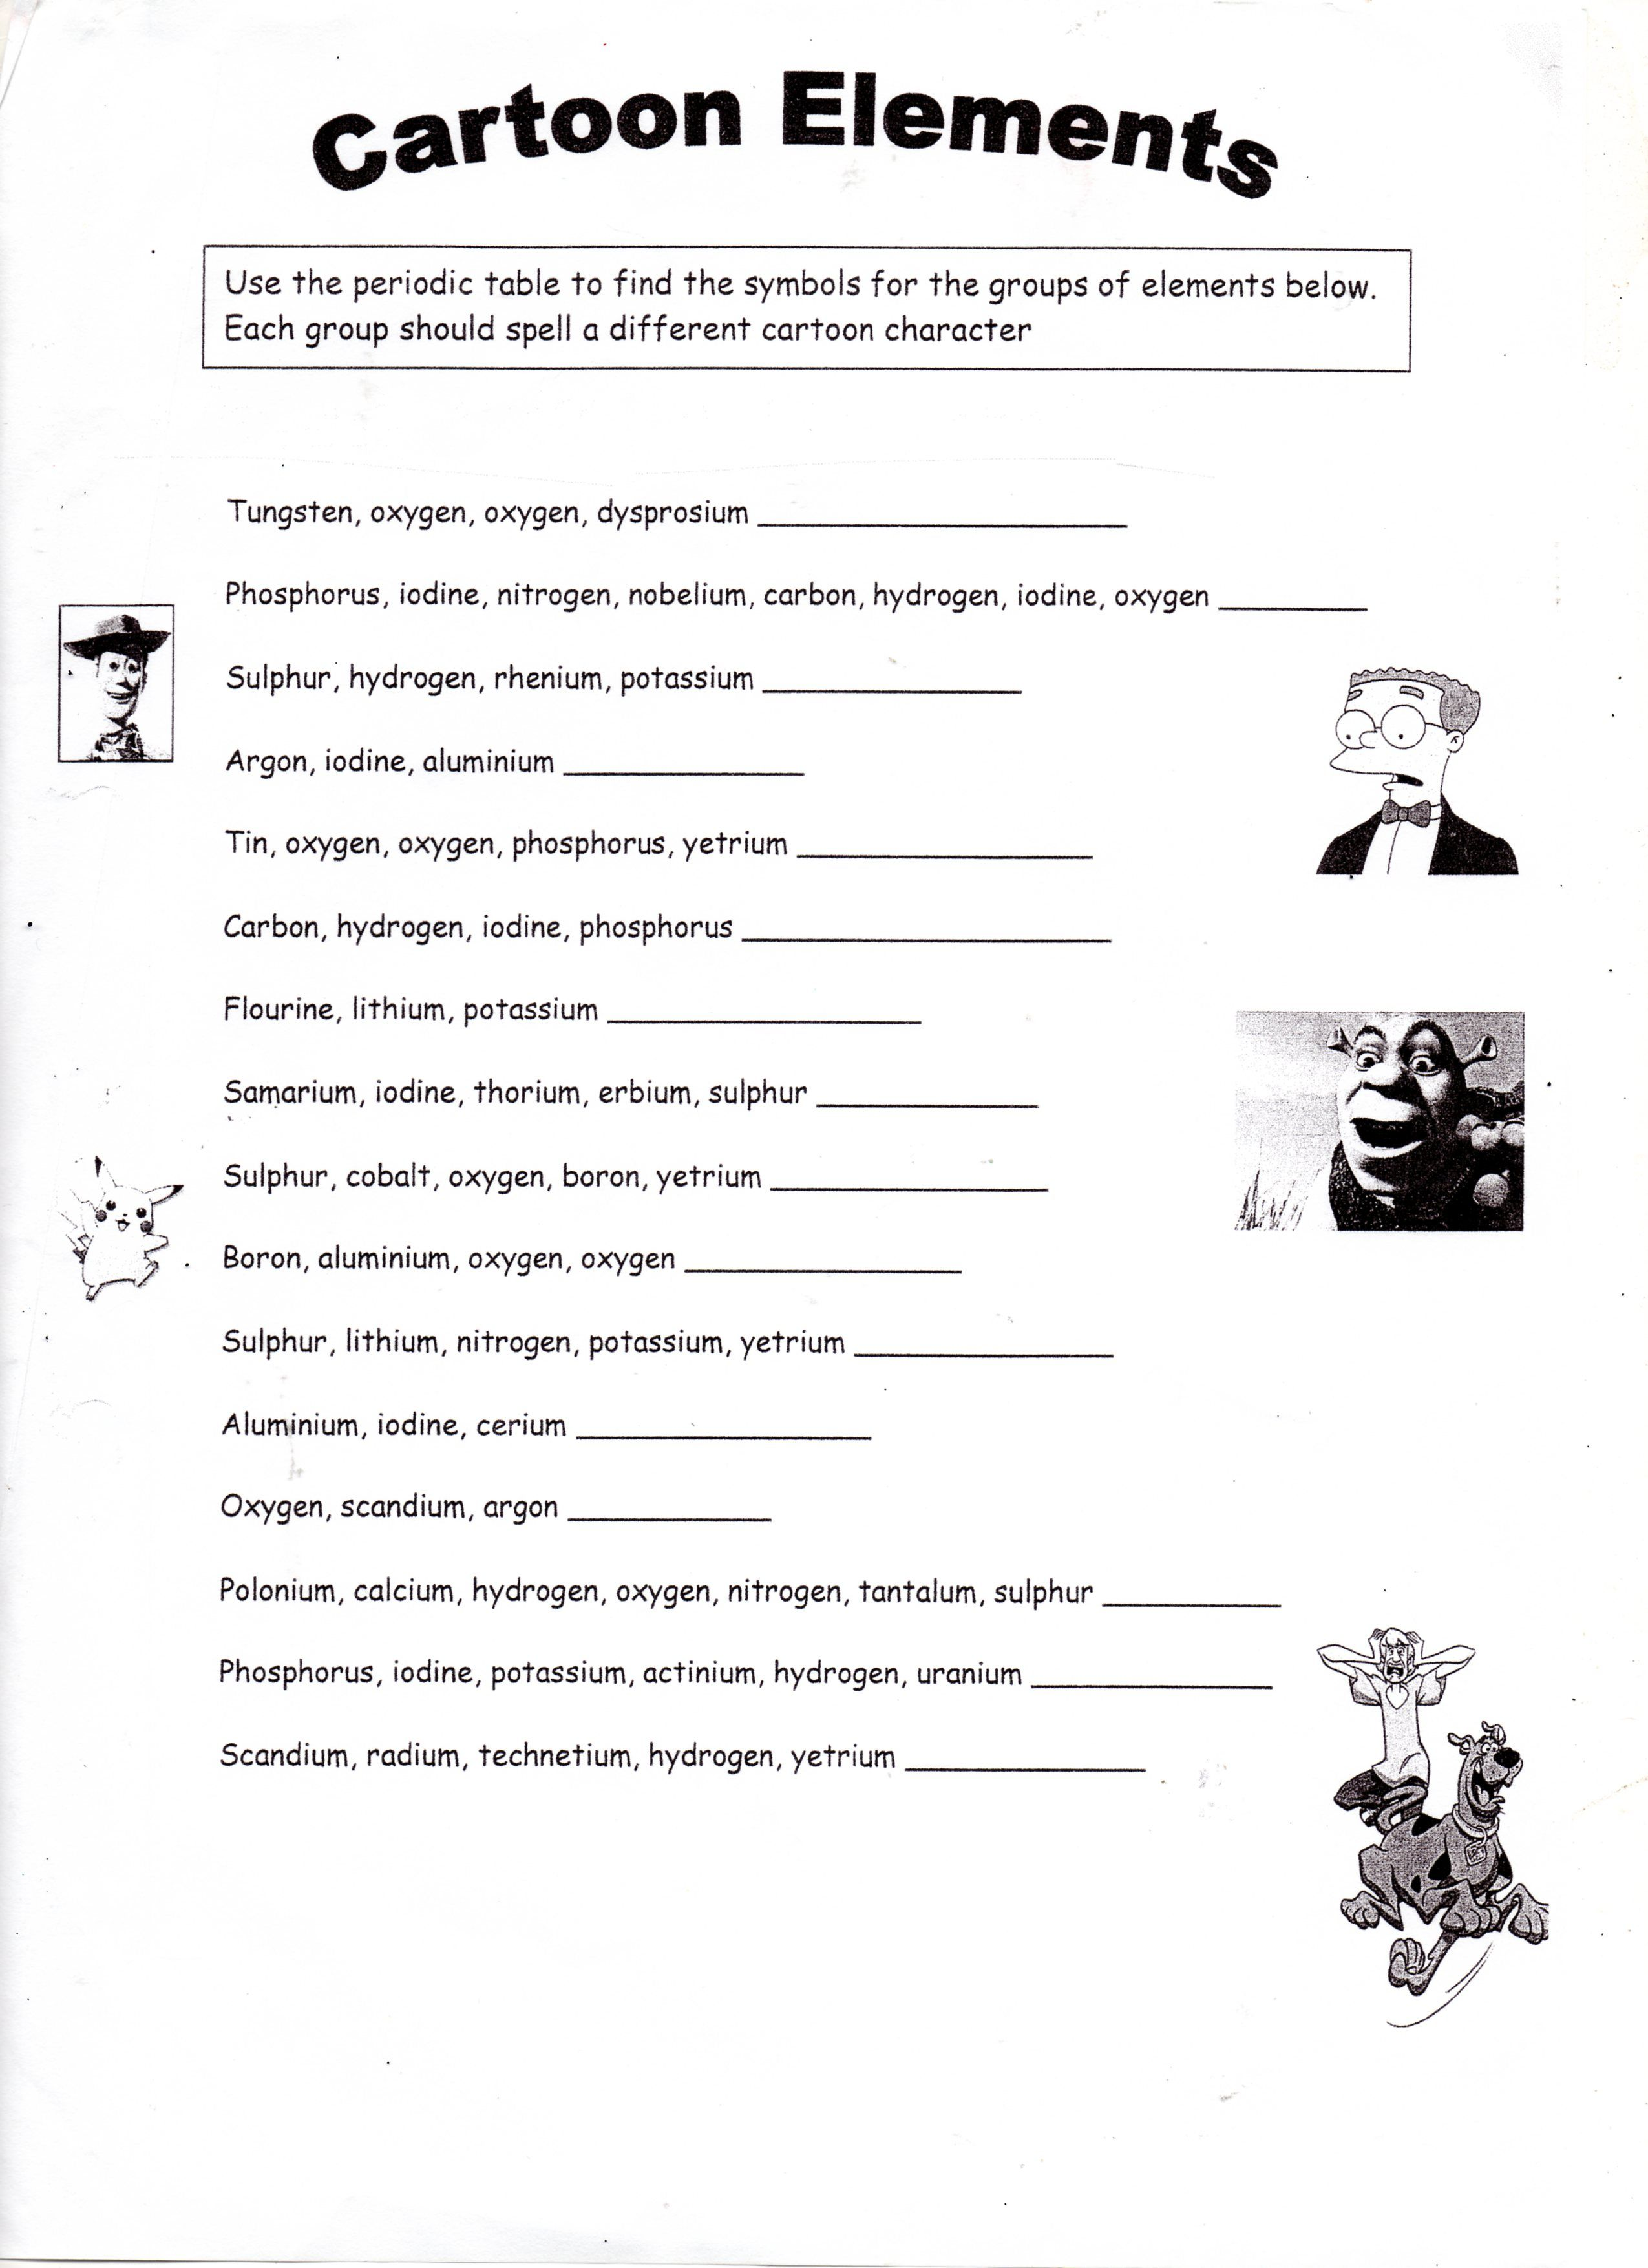 Cartoon Elements Worksheet